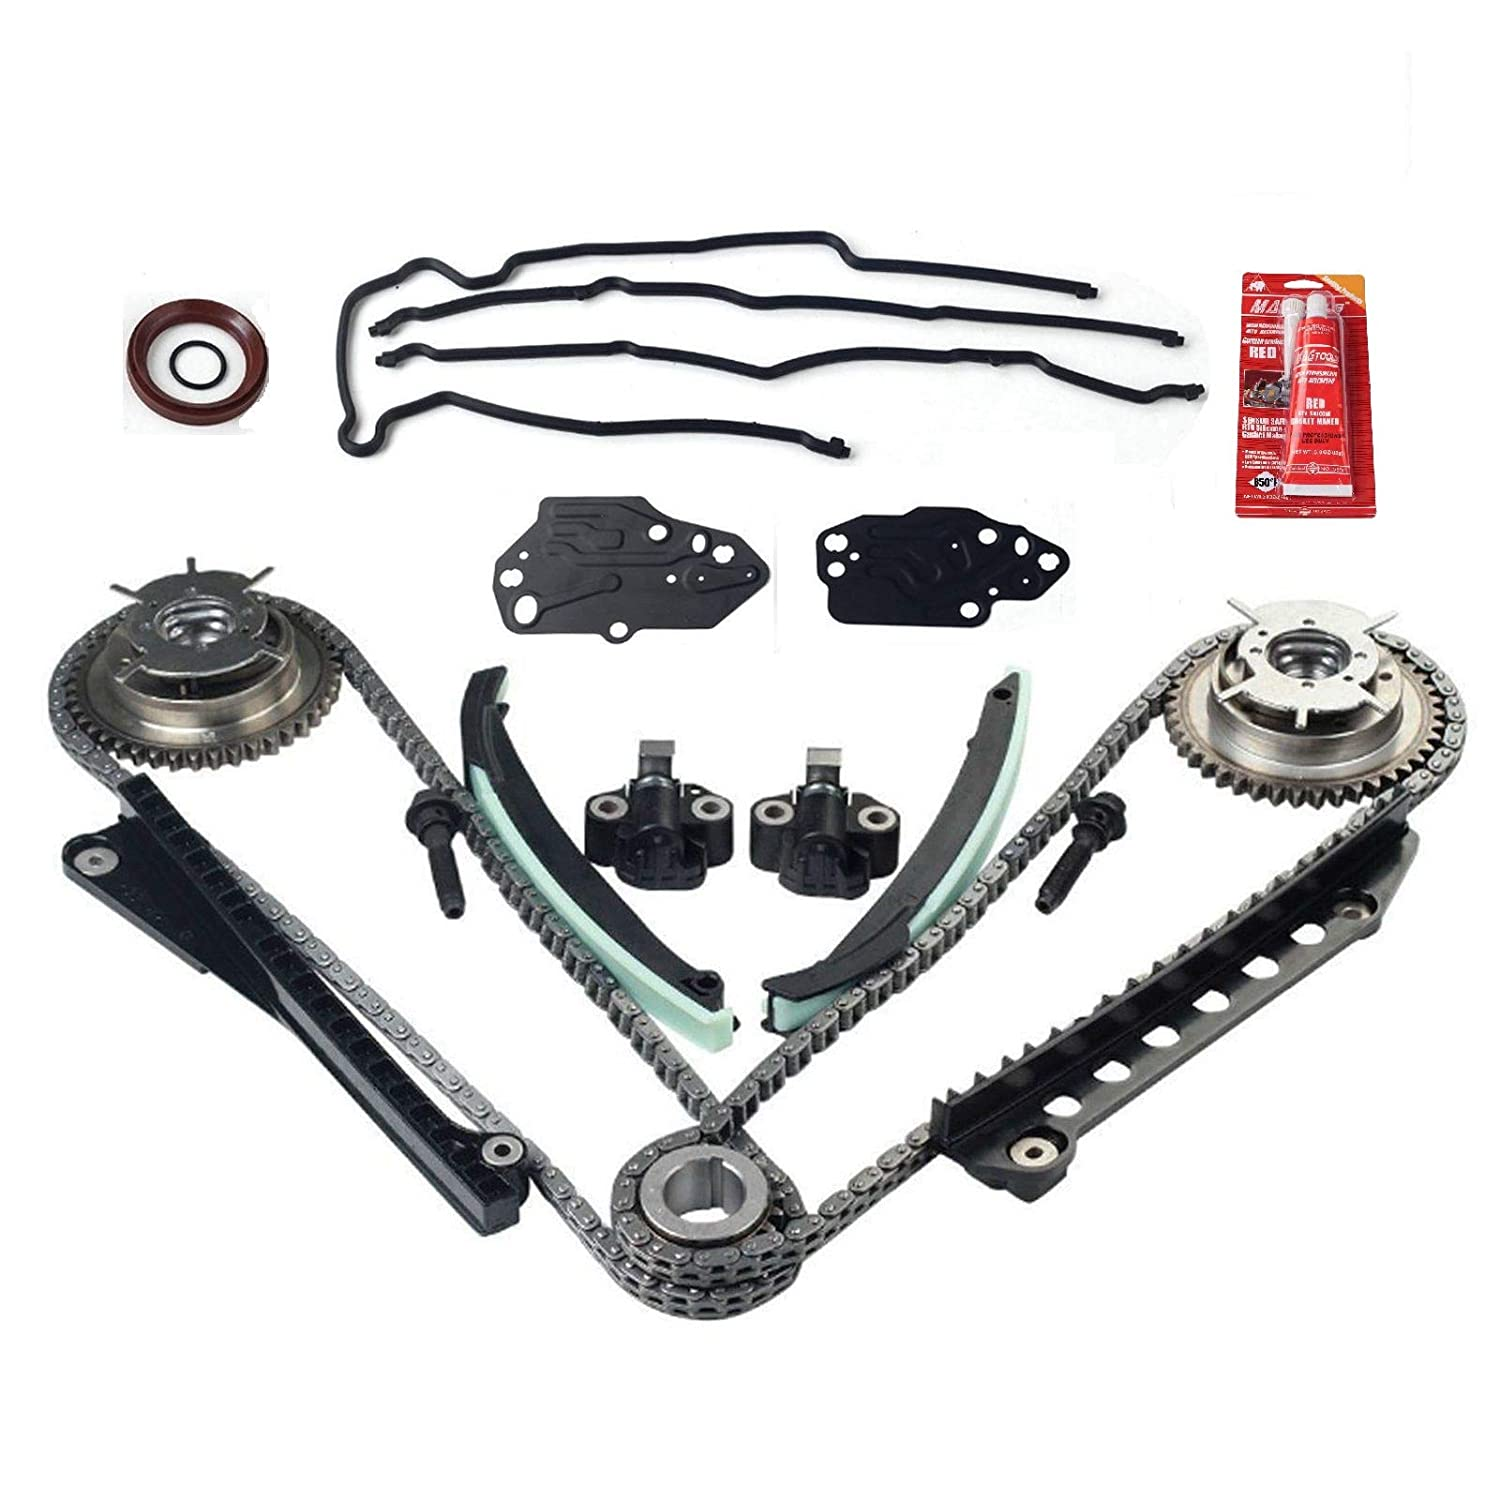 Timing Chain Cam Phaser & Cover Gasket Kit Fit for 04-08 Ford F150 Lincoln 5.4 Triton 3V V8 yjracing